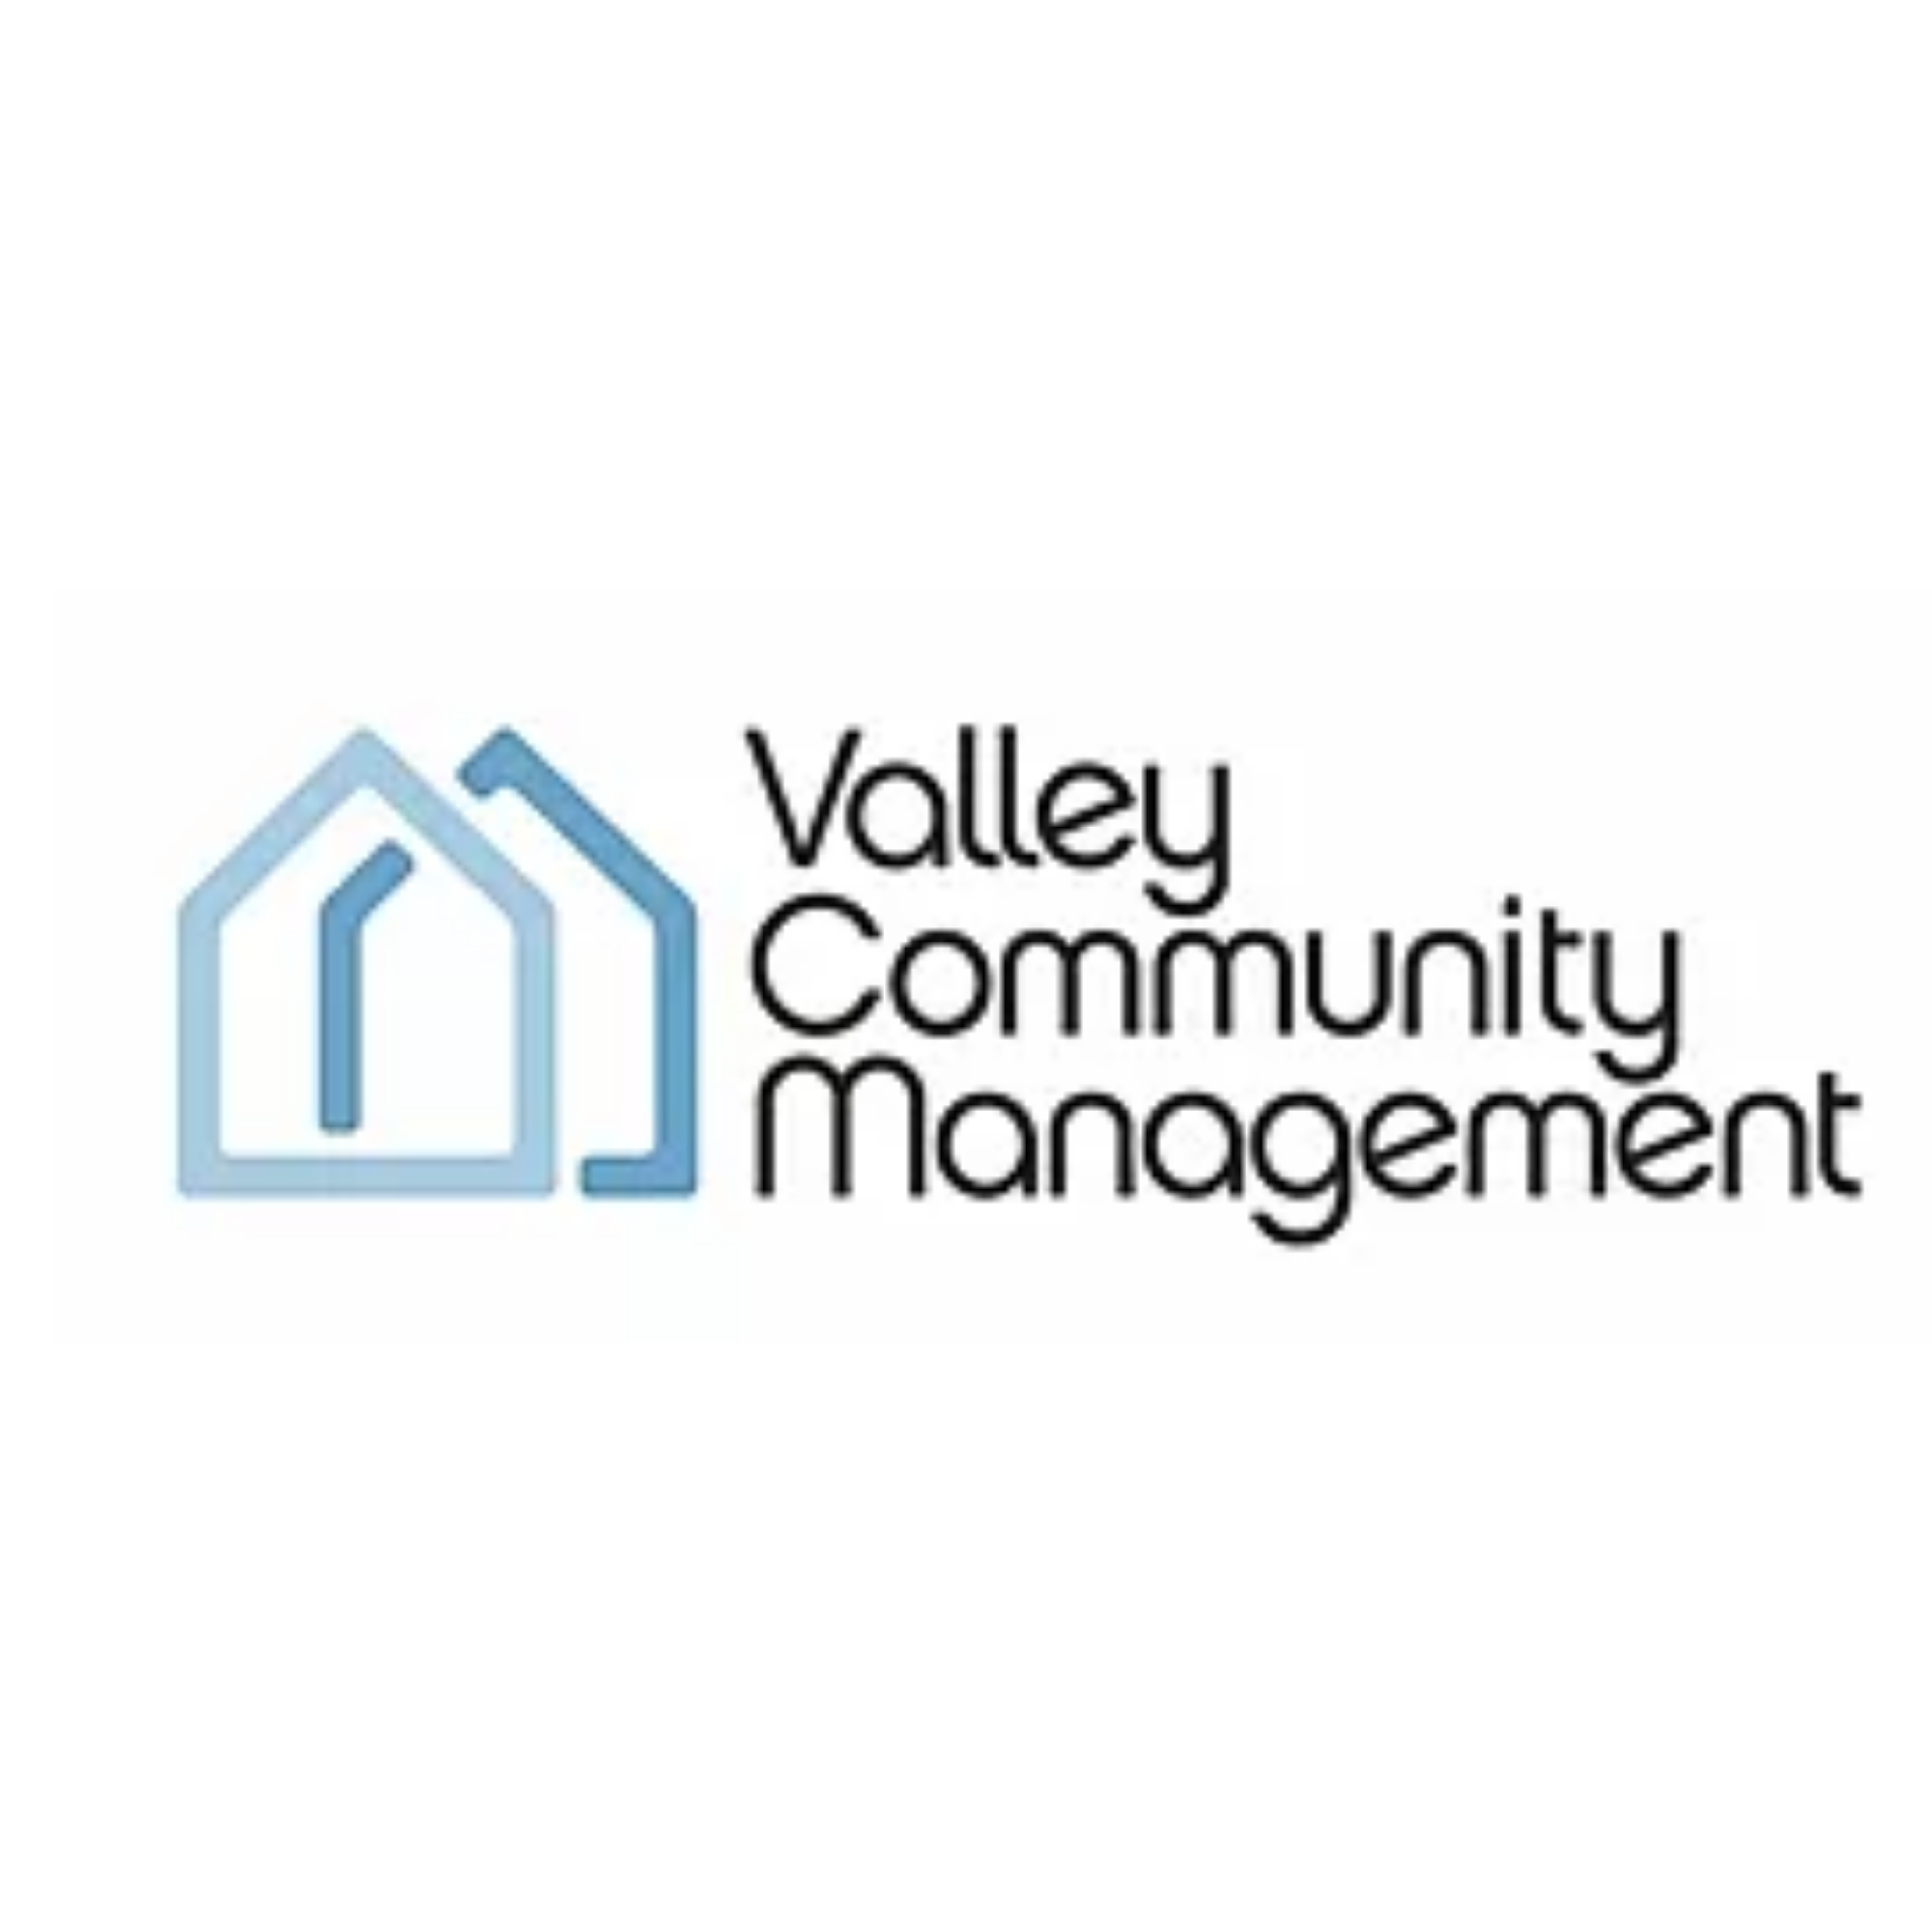 Valley Community Management